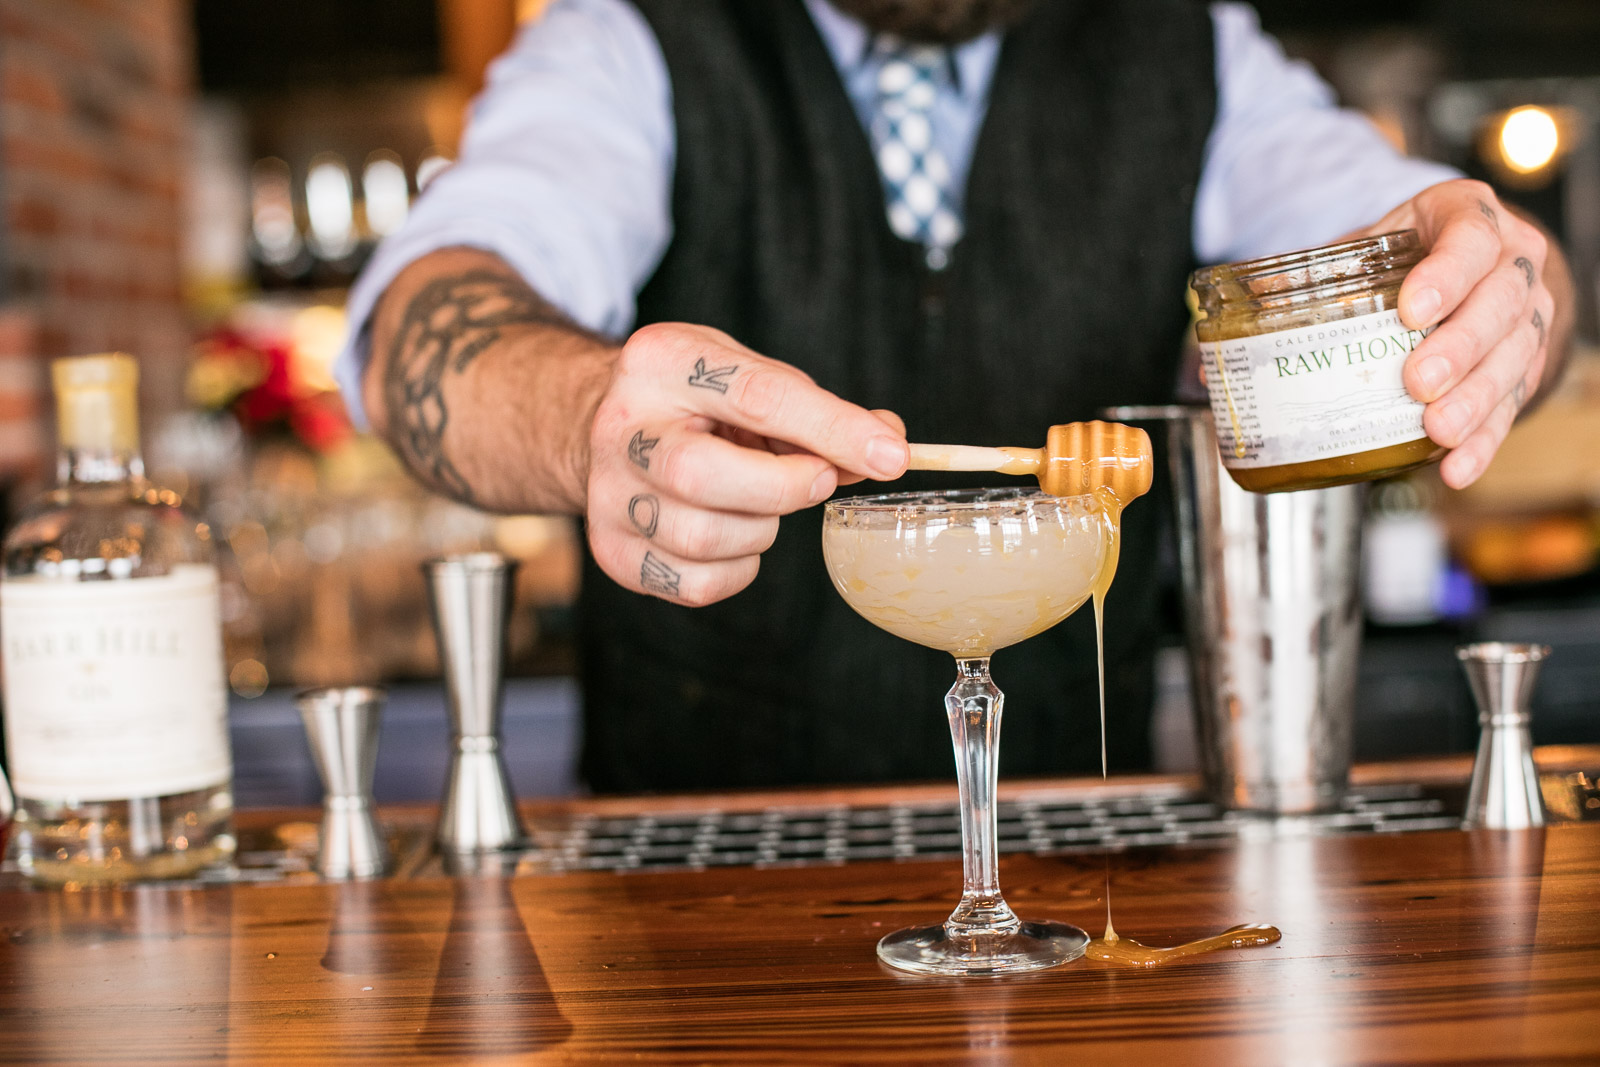 A bartender makes Caledonia Spirits cocktails at Waterworks in Winooski, Vermont. by Reciprocity Studio for Caledonia Spirits.